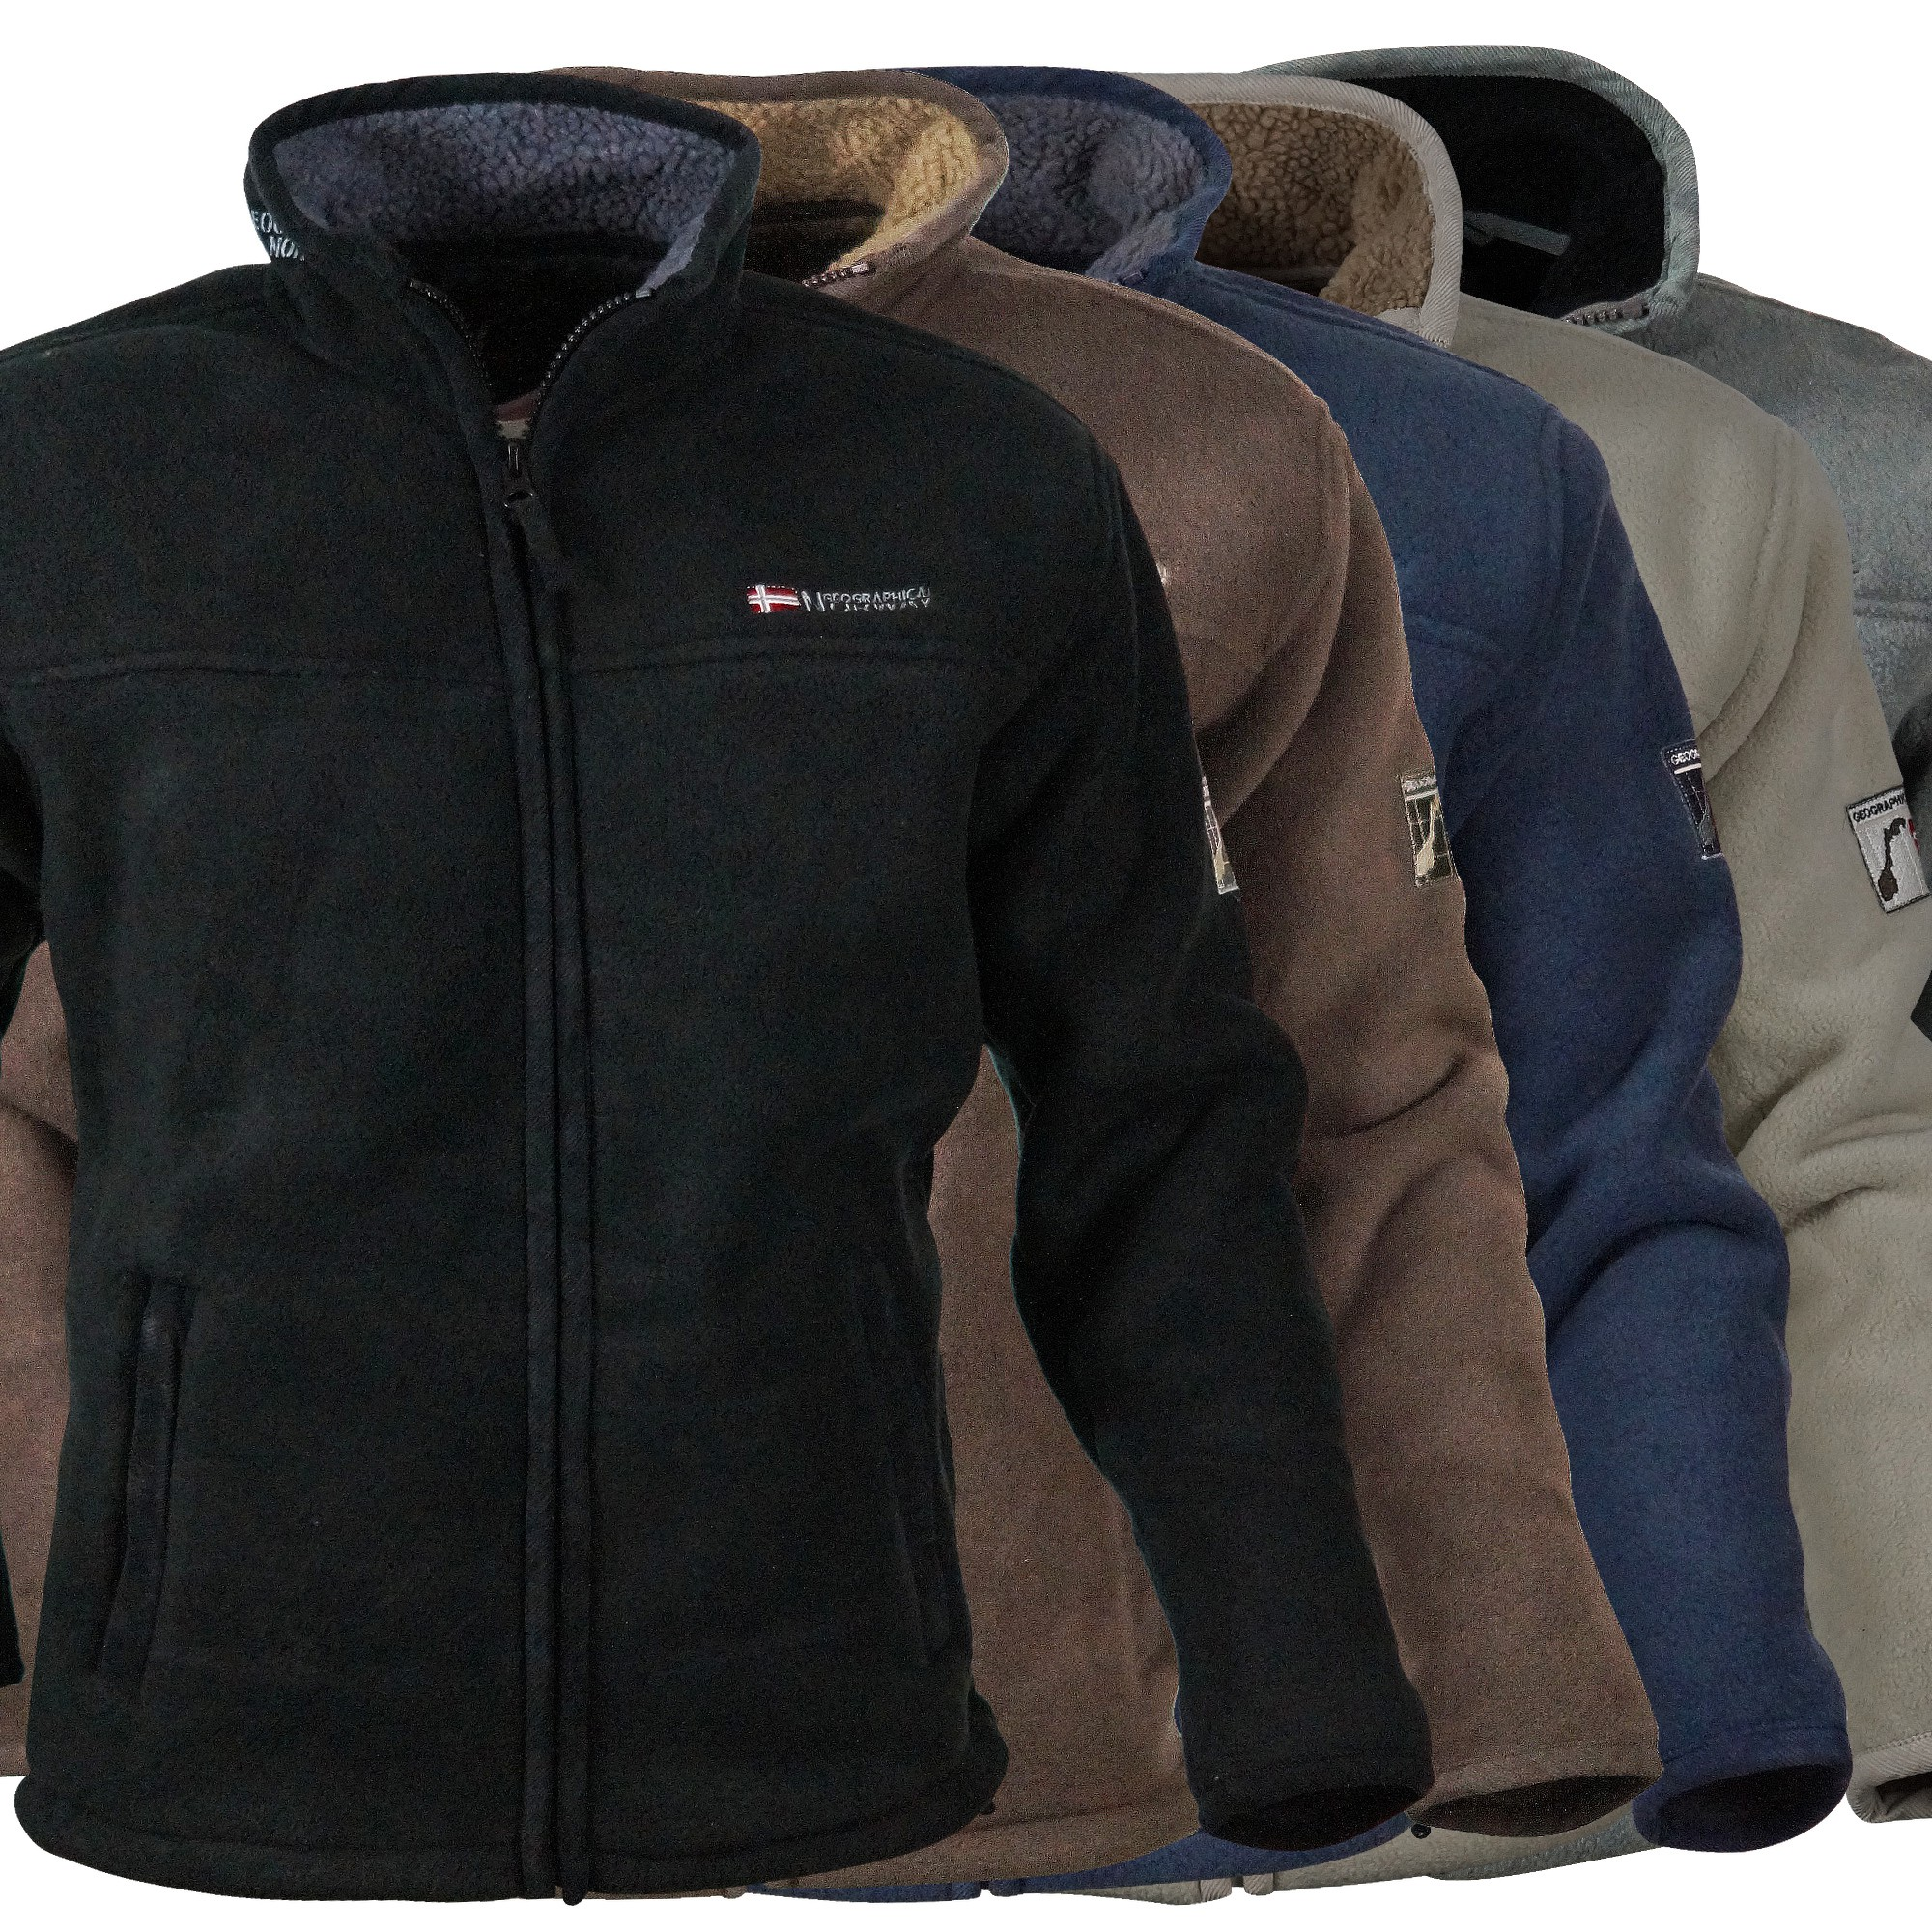 Winterjacken herren fleece